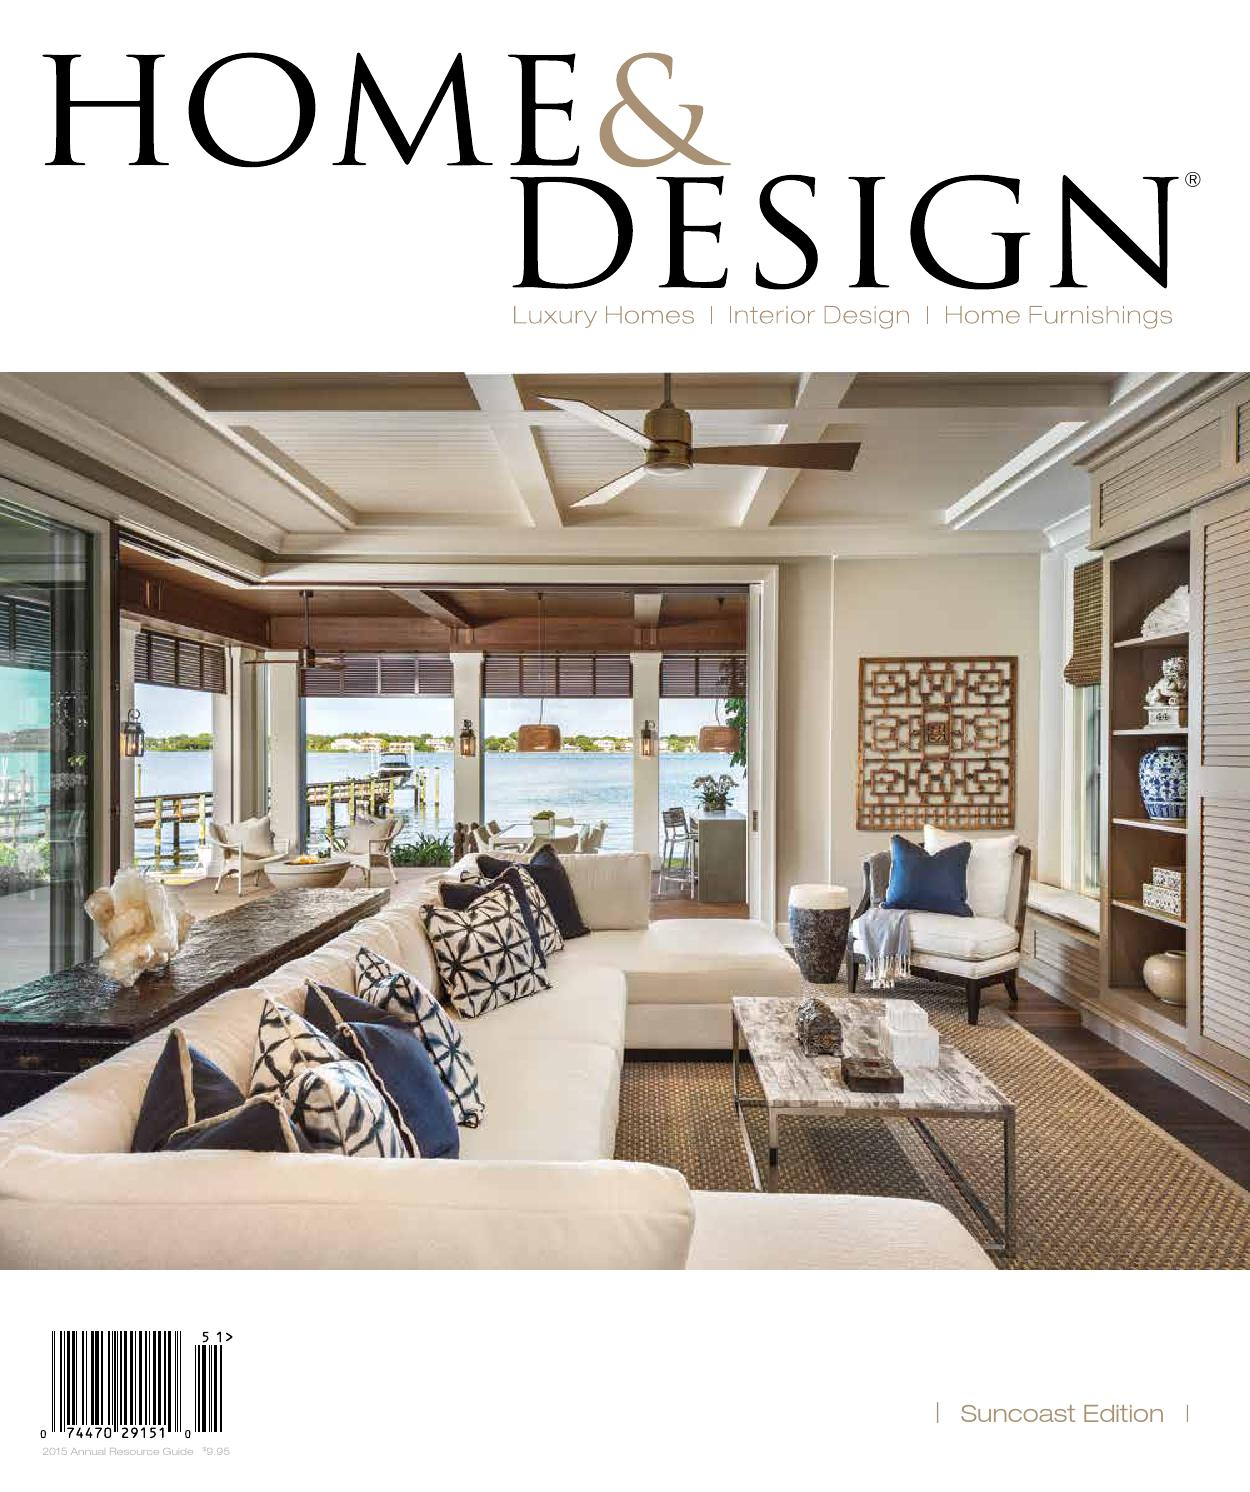 Home design magazine annual resource guide 2015 for Home design and decor